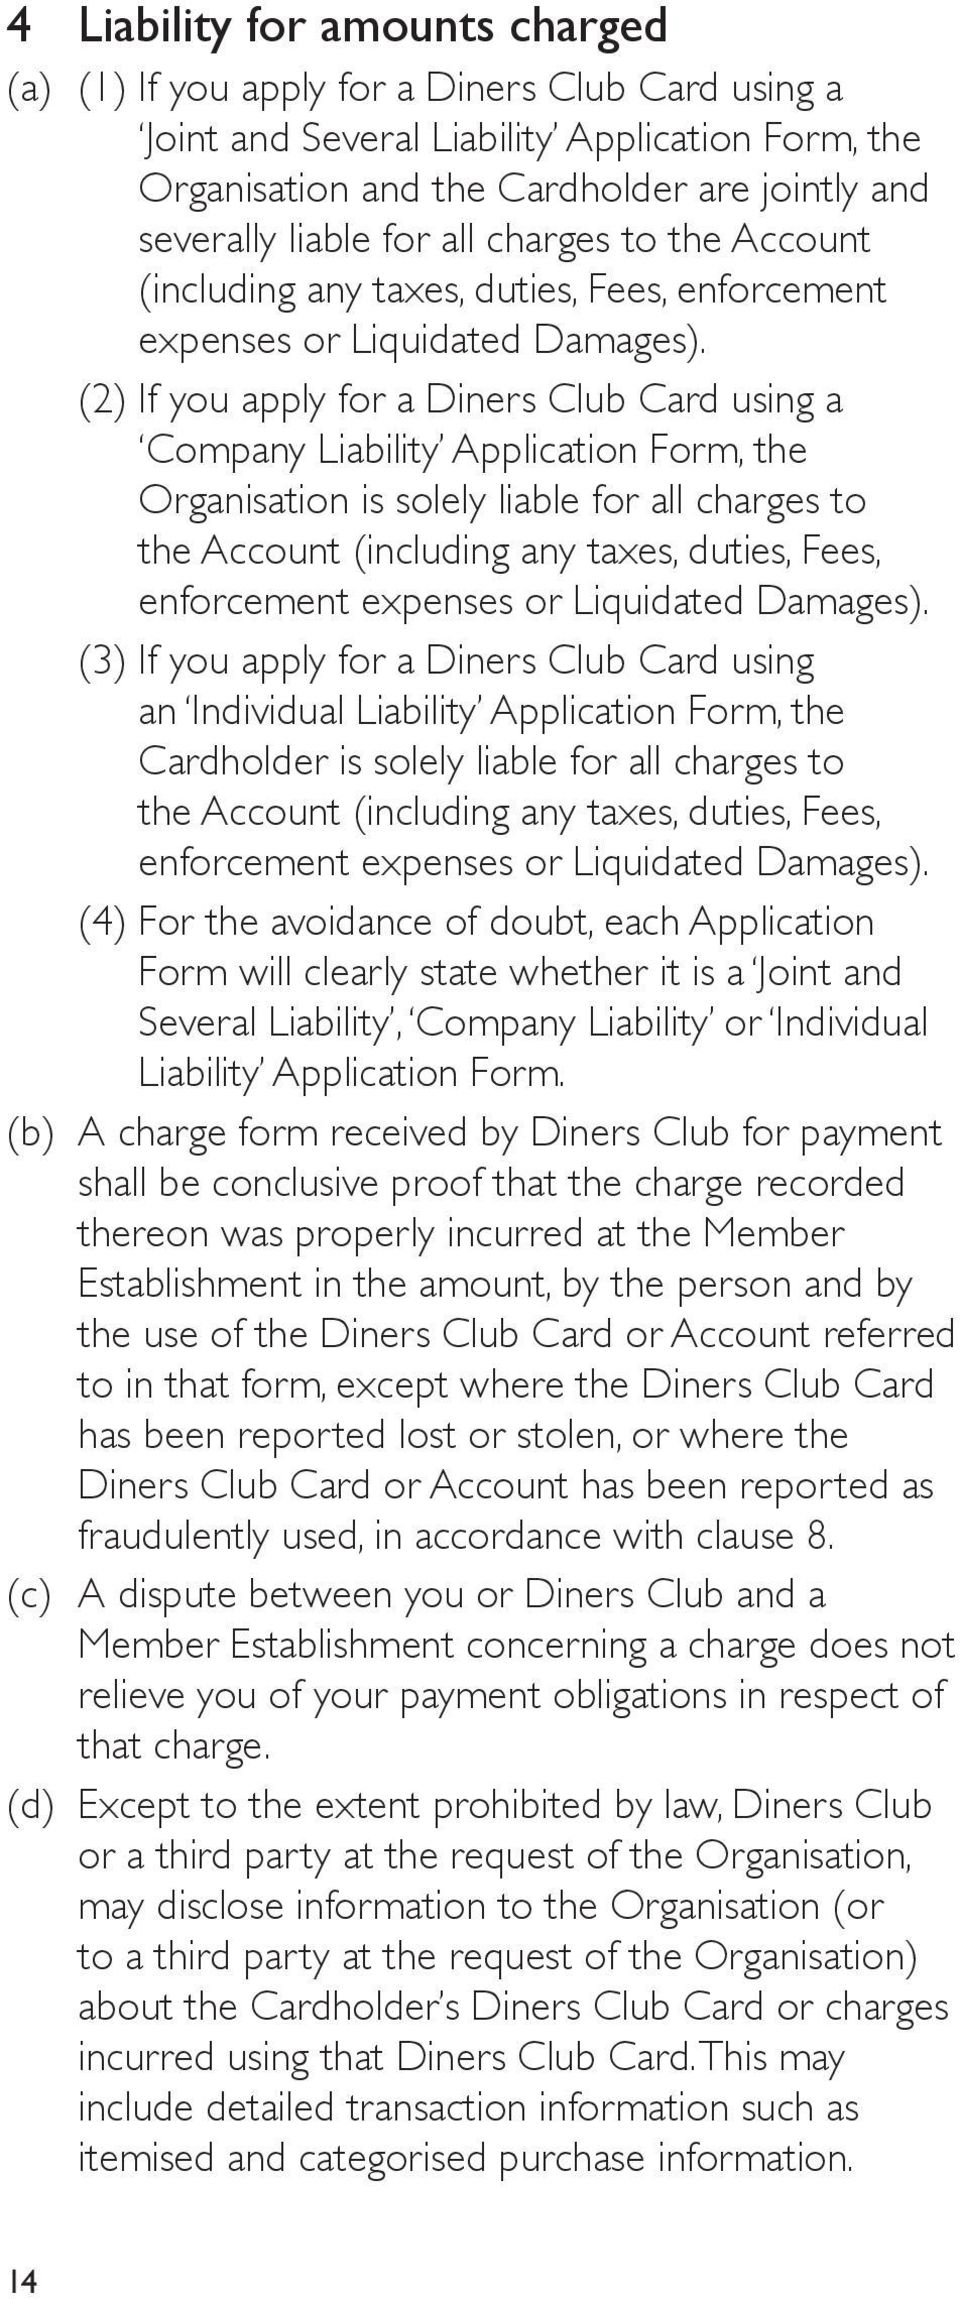 (2) If you apply for a Diners Club Card using a Company Liability Application Form, the Organisation is solely liable  (3) If you apply for a Diners Club Card using an Individual Liability